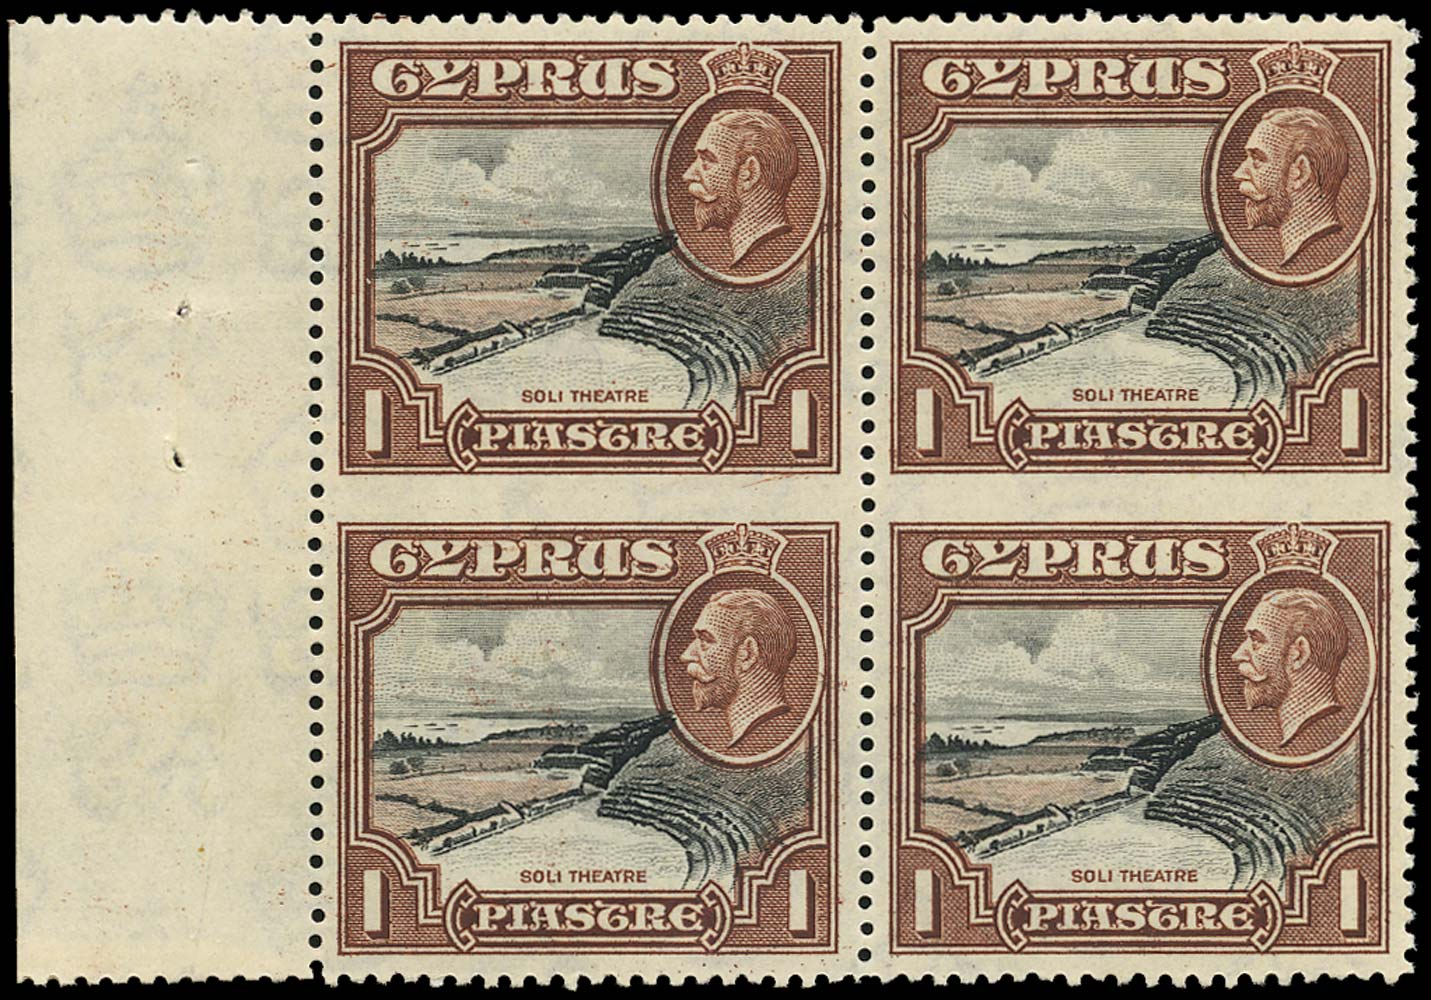 CYPRUS 1934  SG136a Mint 1pi UNIQUE block of 4 IMPERFORATE BETWEEN